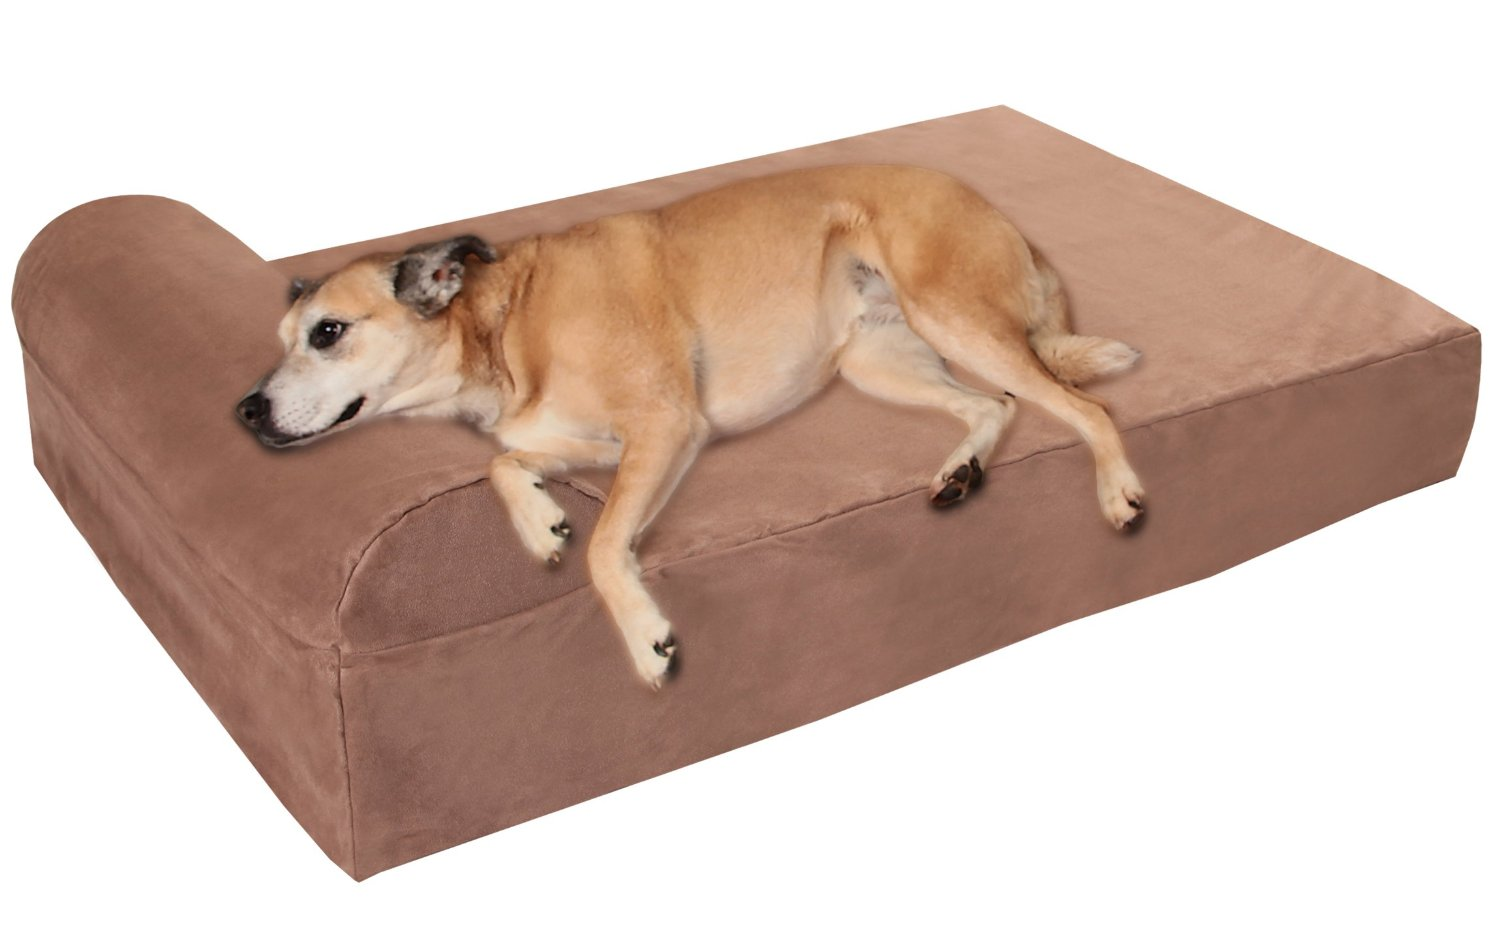 Top 10 Best Orthopedic Dog Bed Reviews — Models Worth Buying